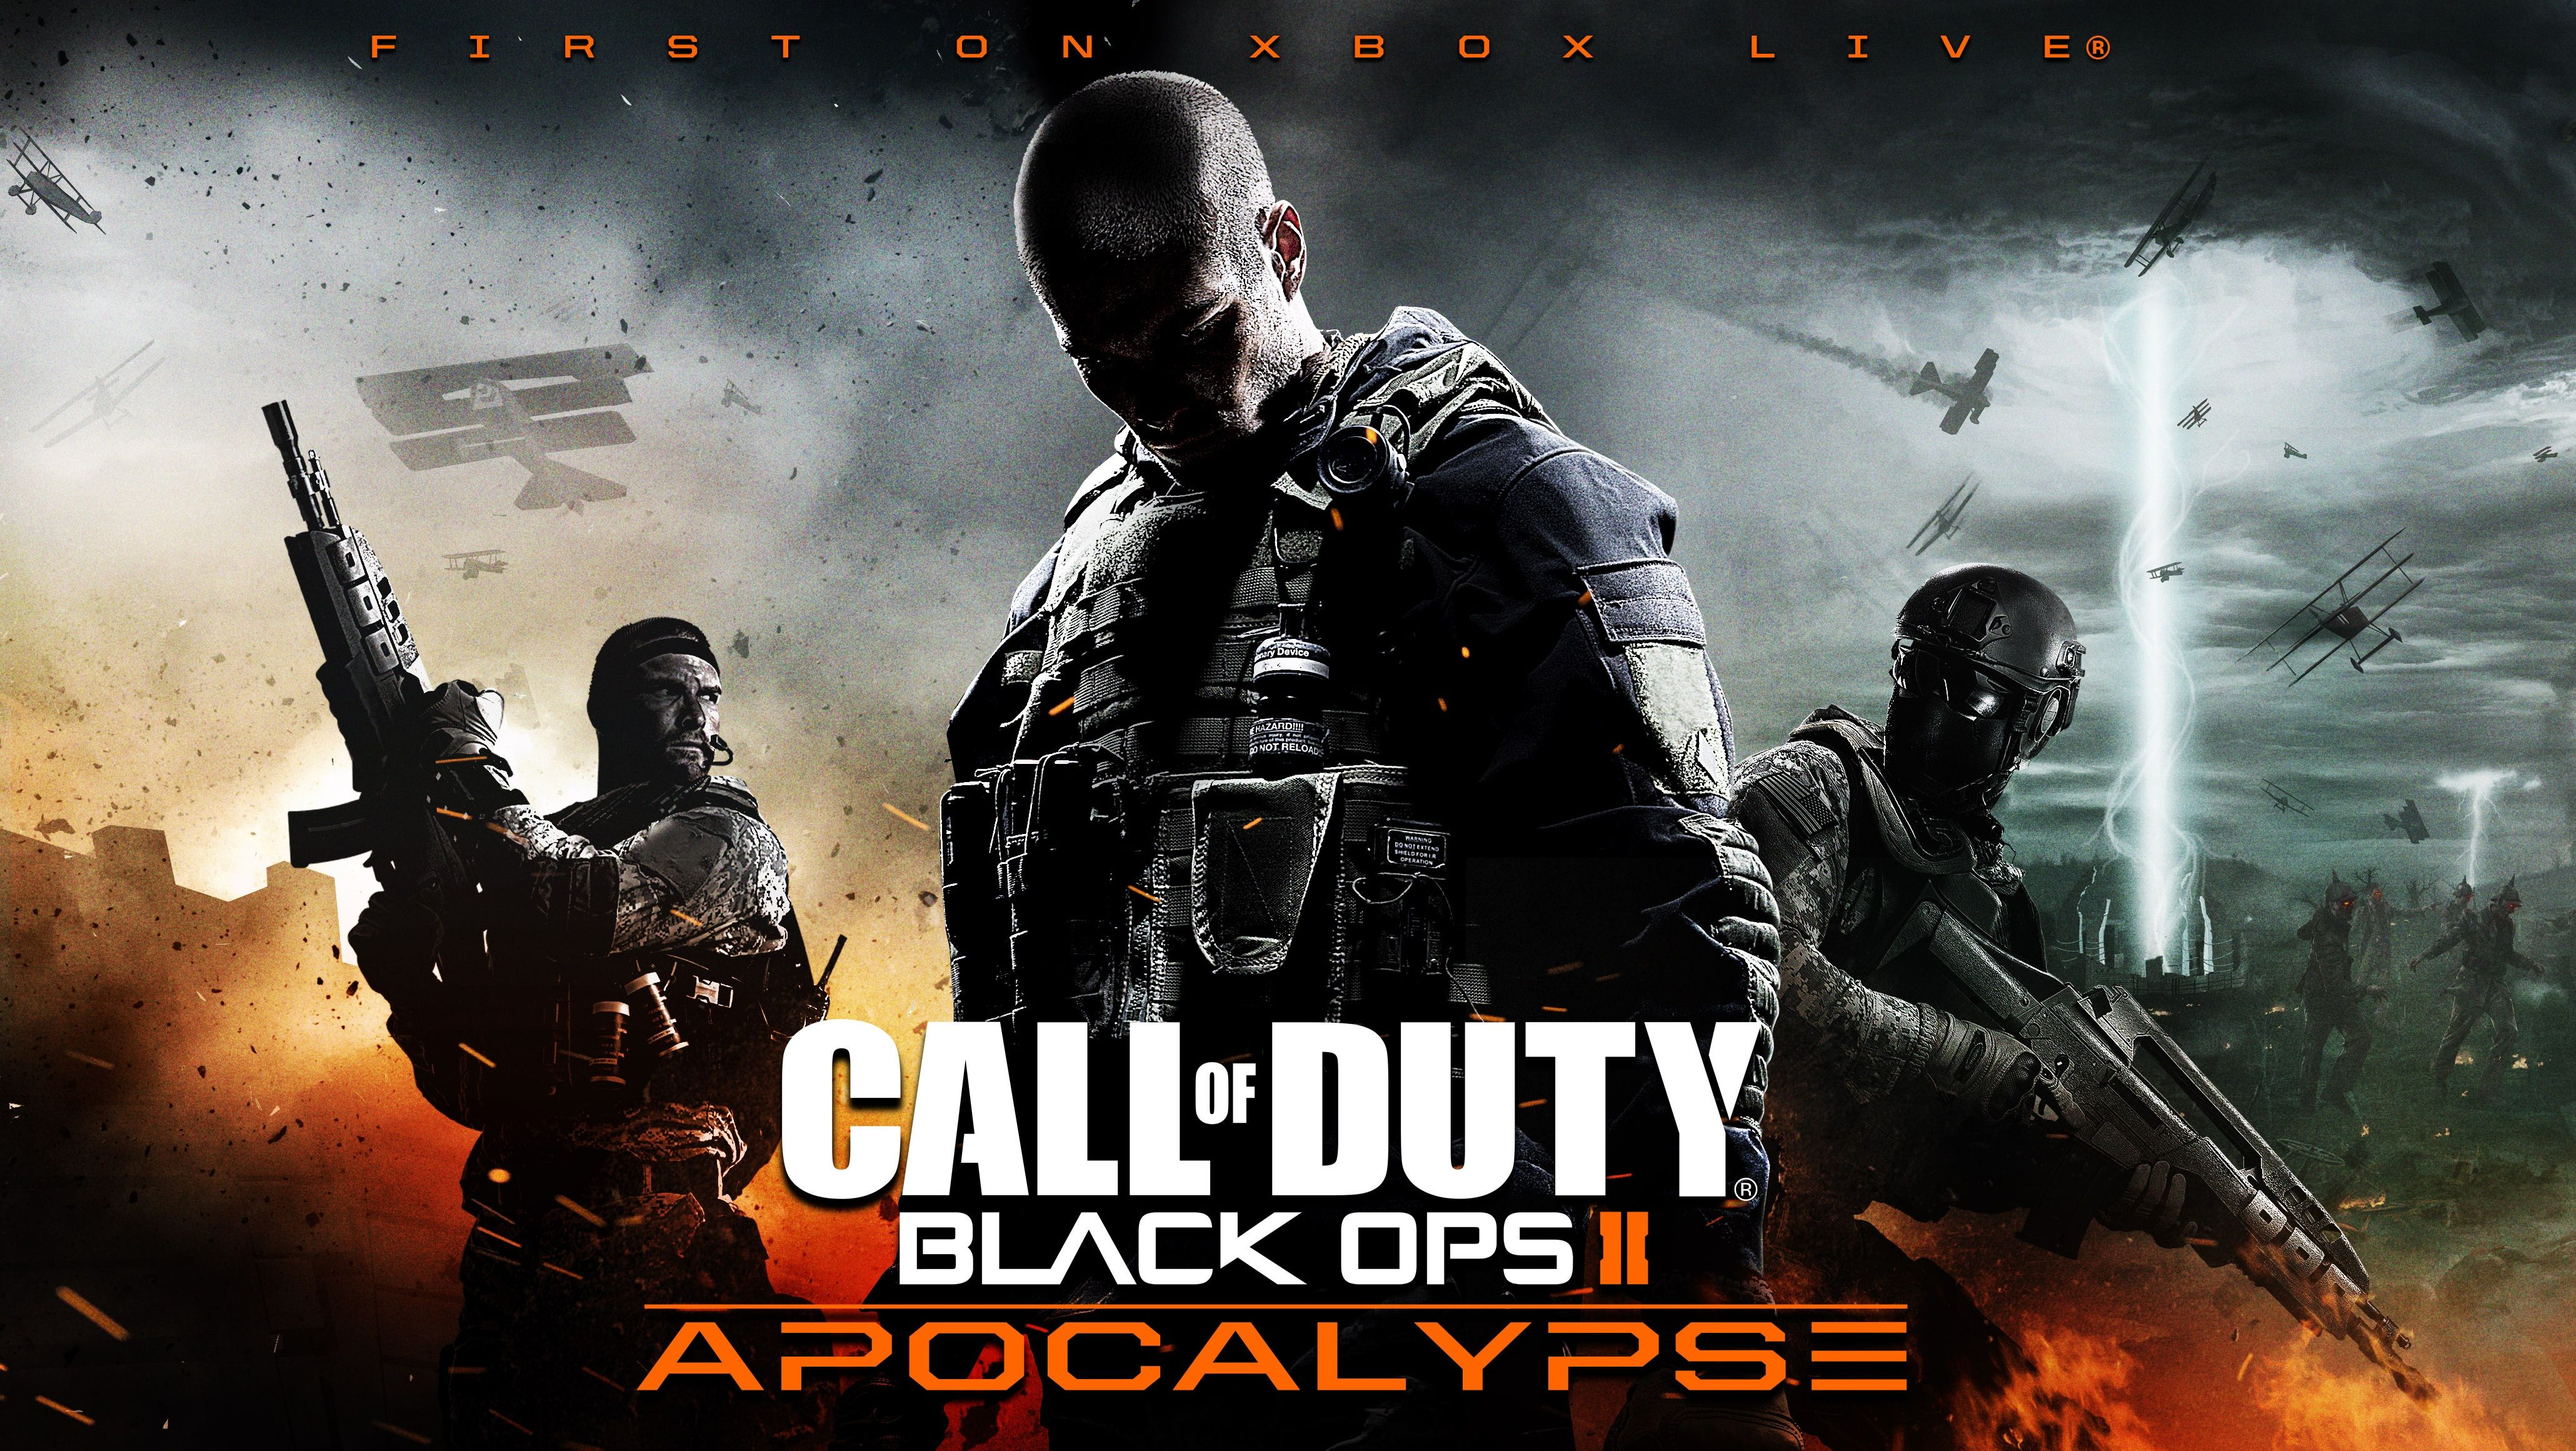 Cod Black Ops 2 Wallpaper Posted By Sarah Anderson